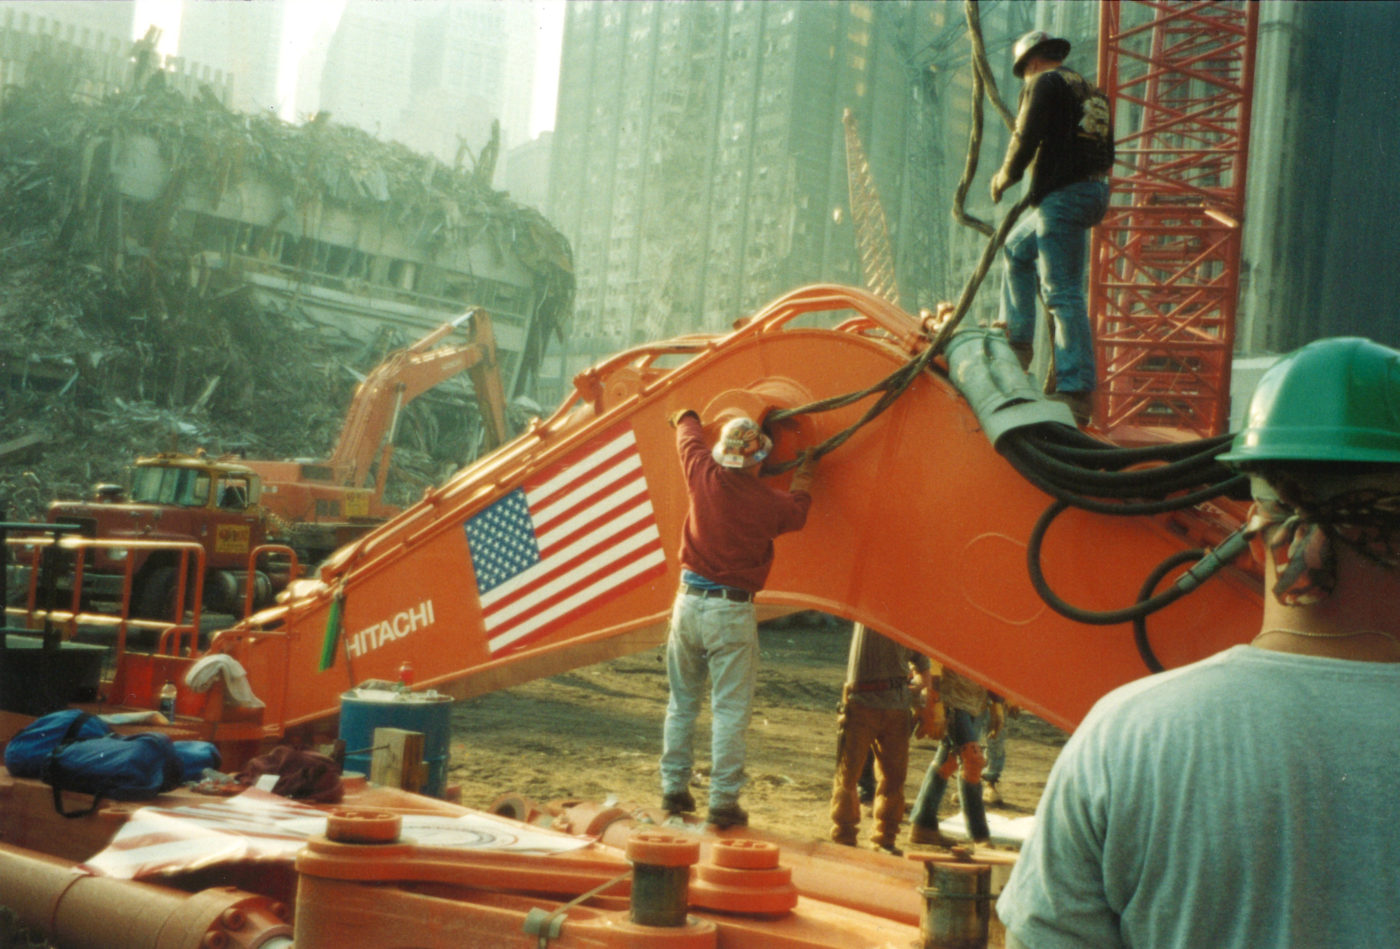 Two Workers Repairing a Digger Arm at Ground Zero